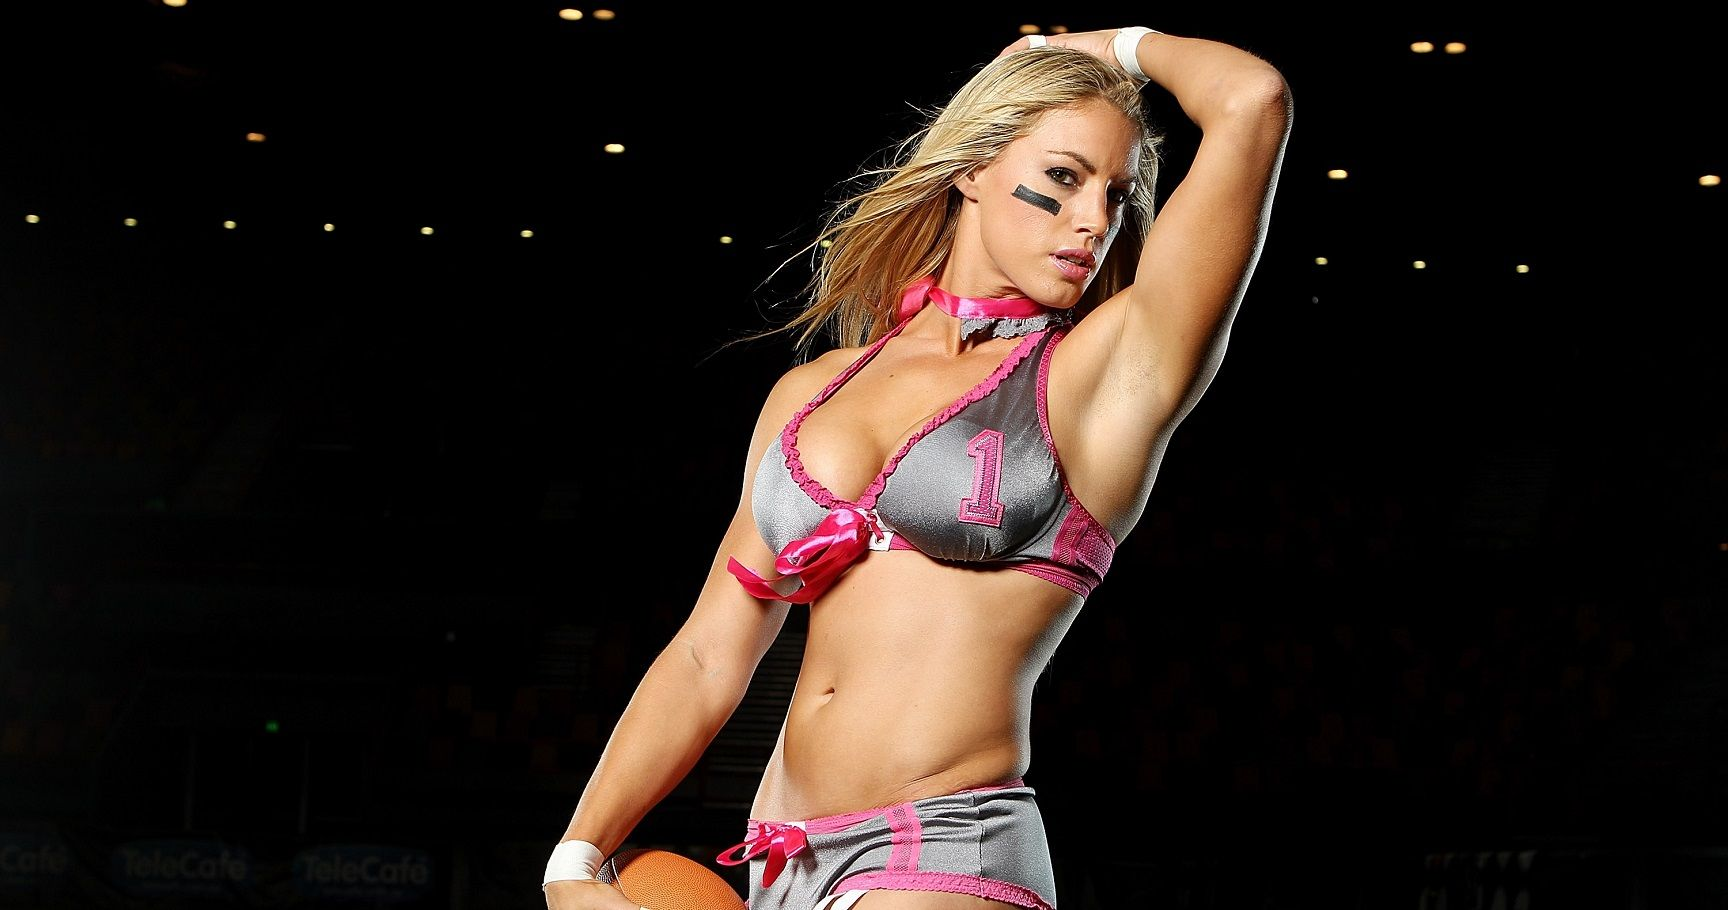 15 Sexiest Women in the Legends Football League